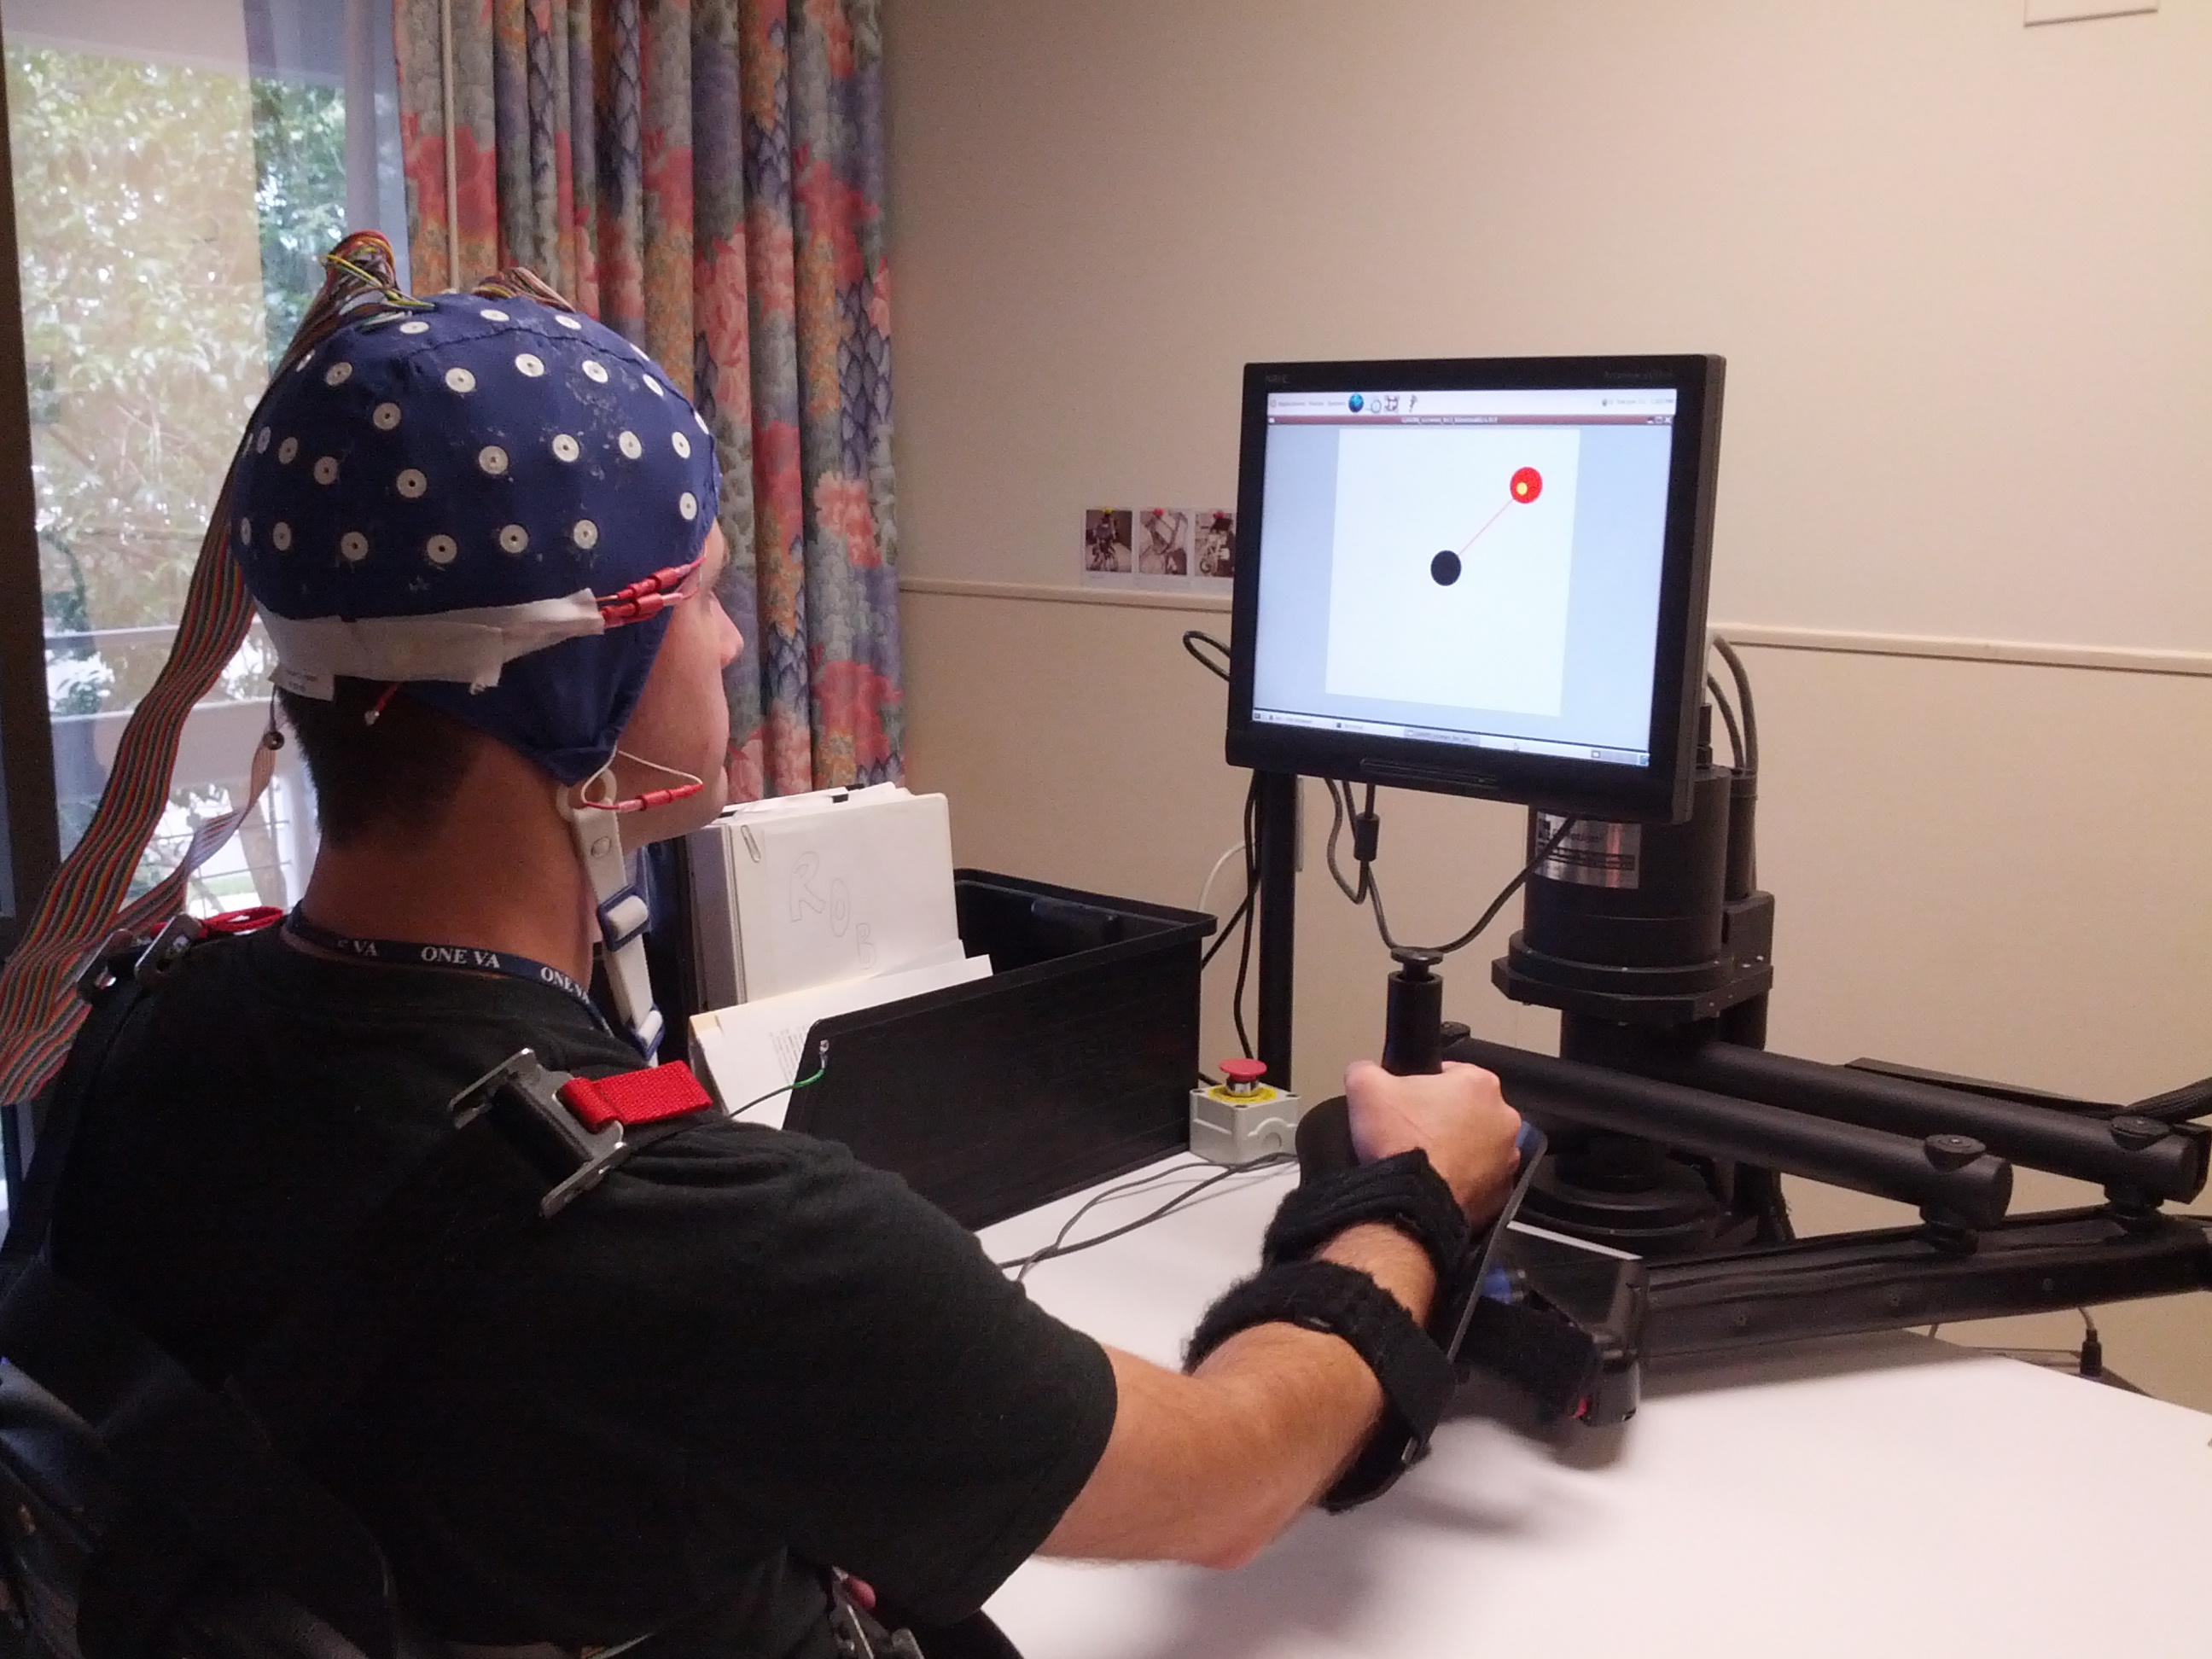 Research subject with EEG cap and therapy robot